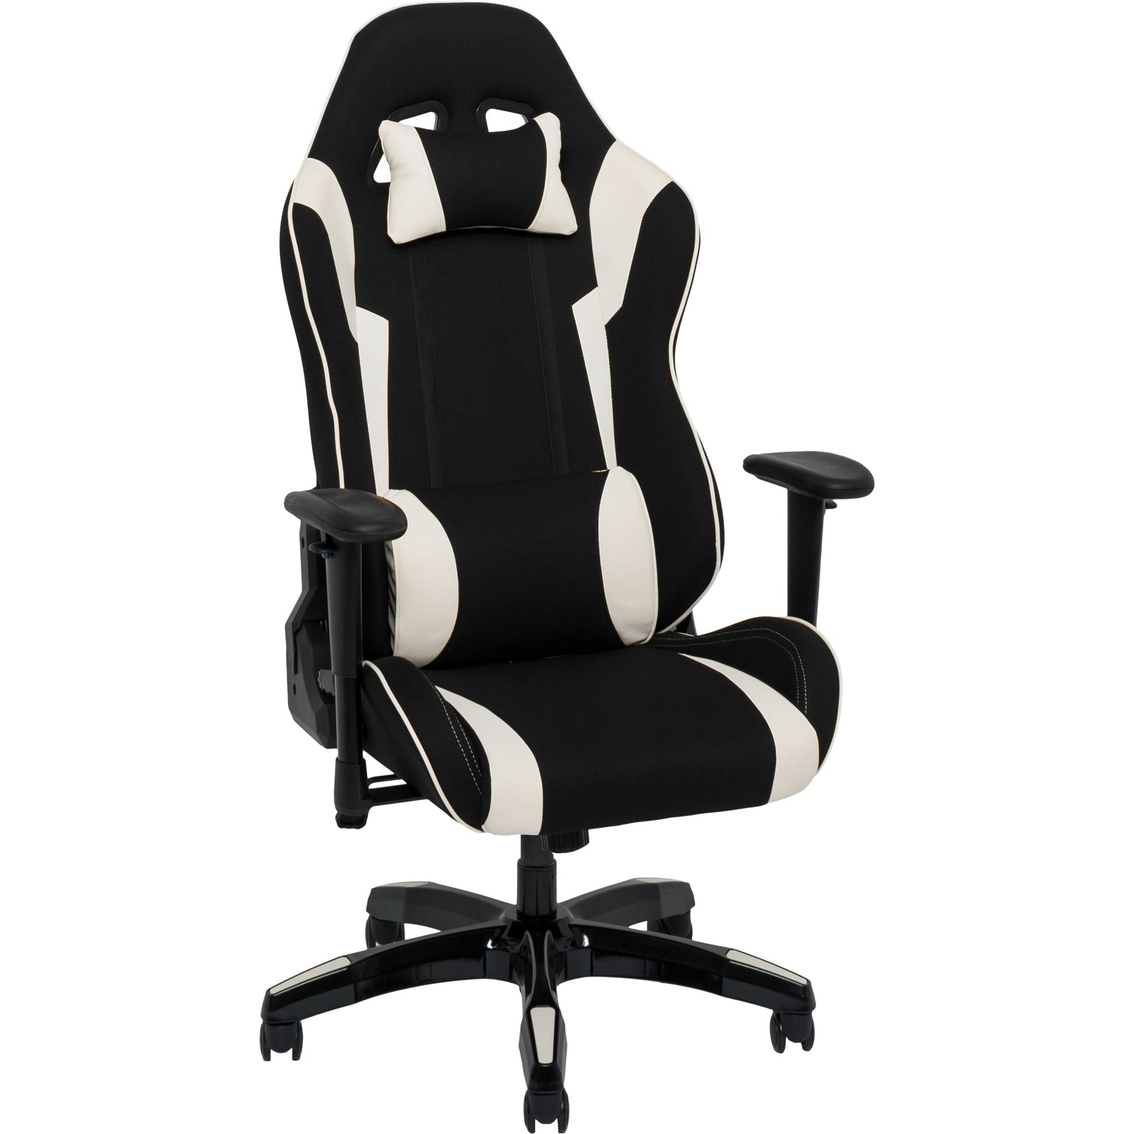 Outstanding Corliving High Back Ergonomic Gaming Chair With Height Ibusinesslaw Wood Chair Design Ideas Ibusinesslaworg